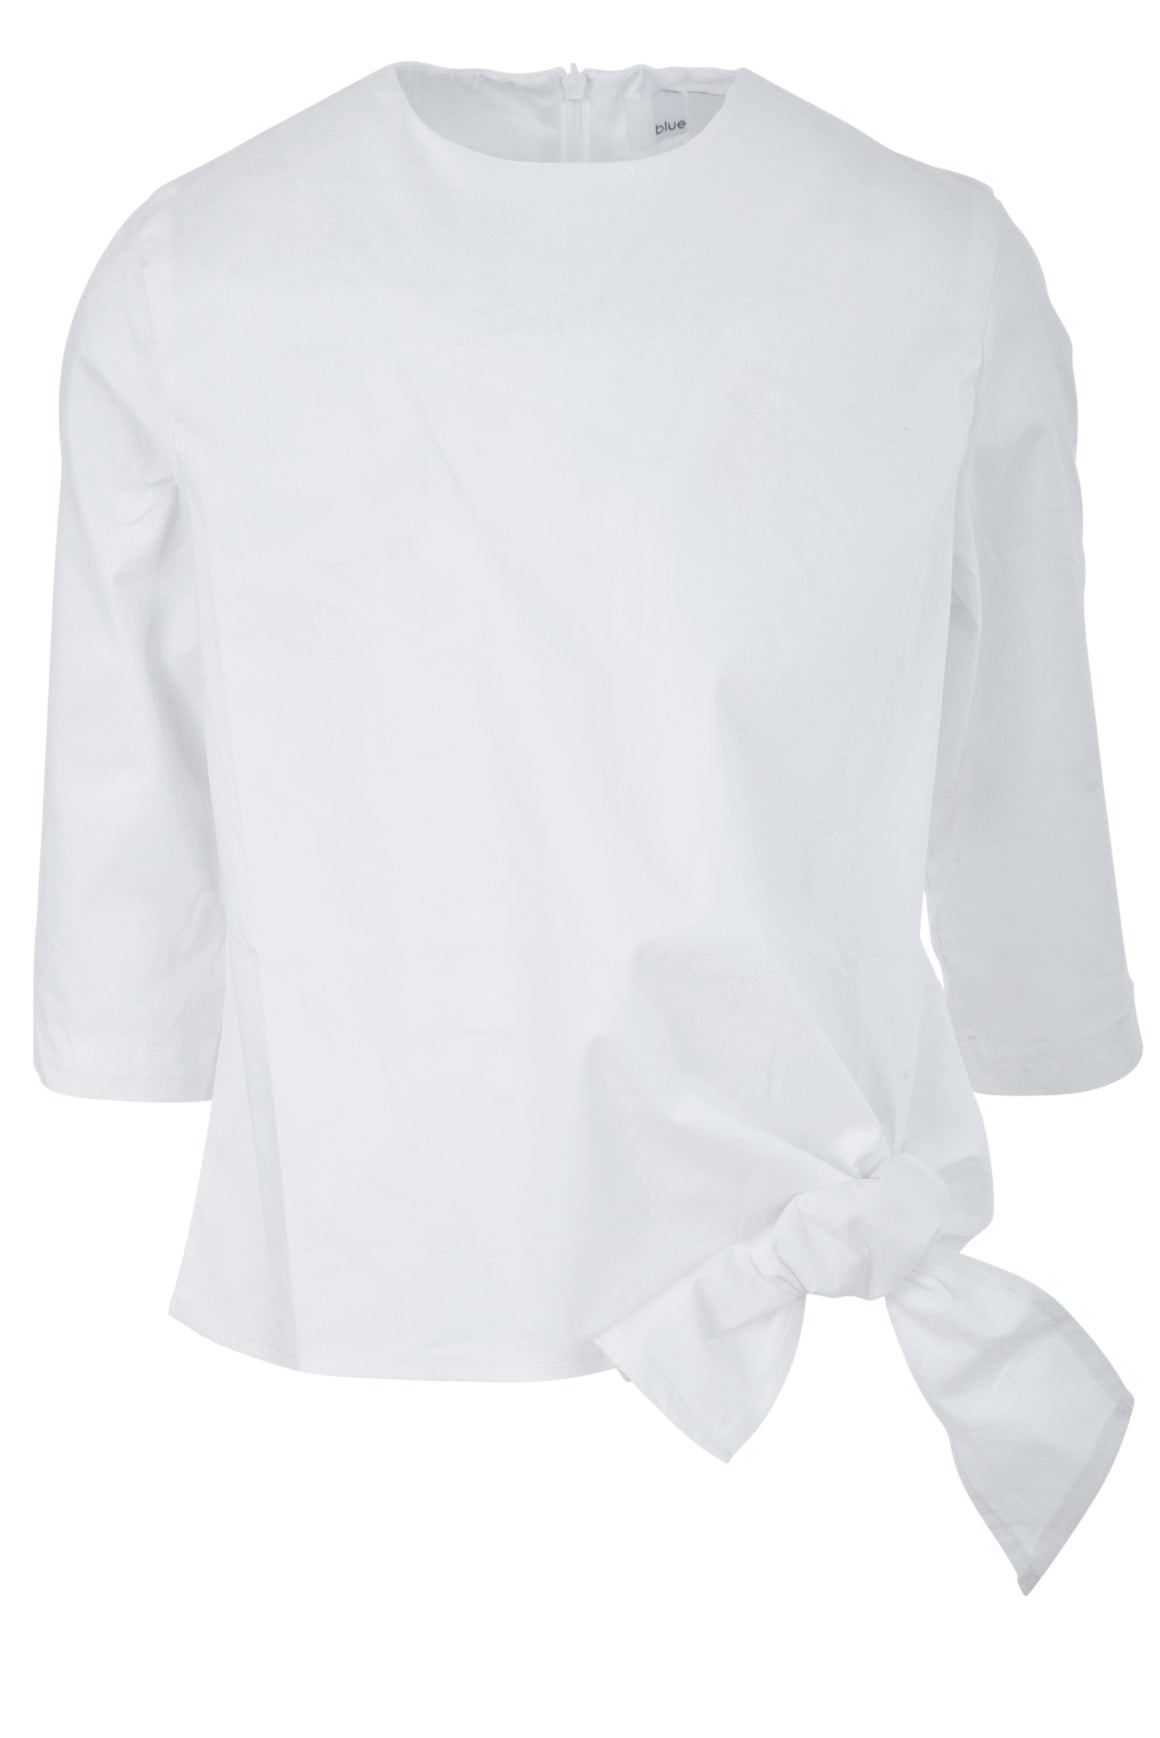 Kids Caralyn Top - Junees